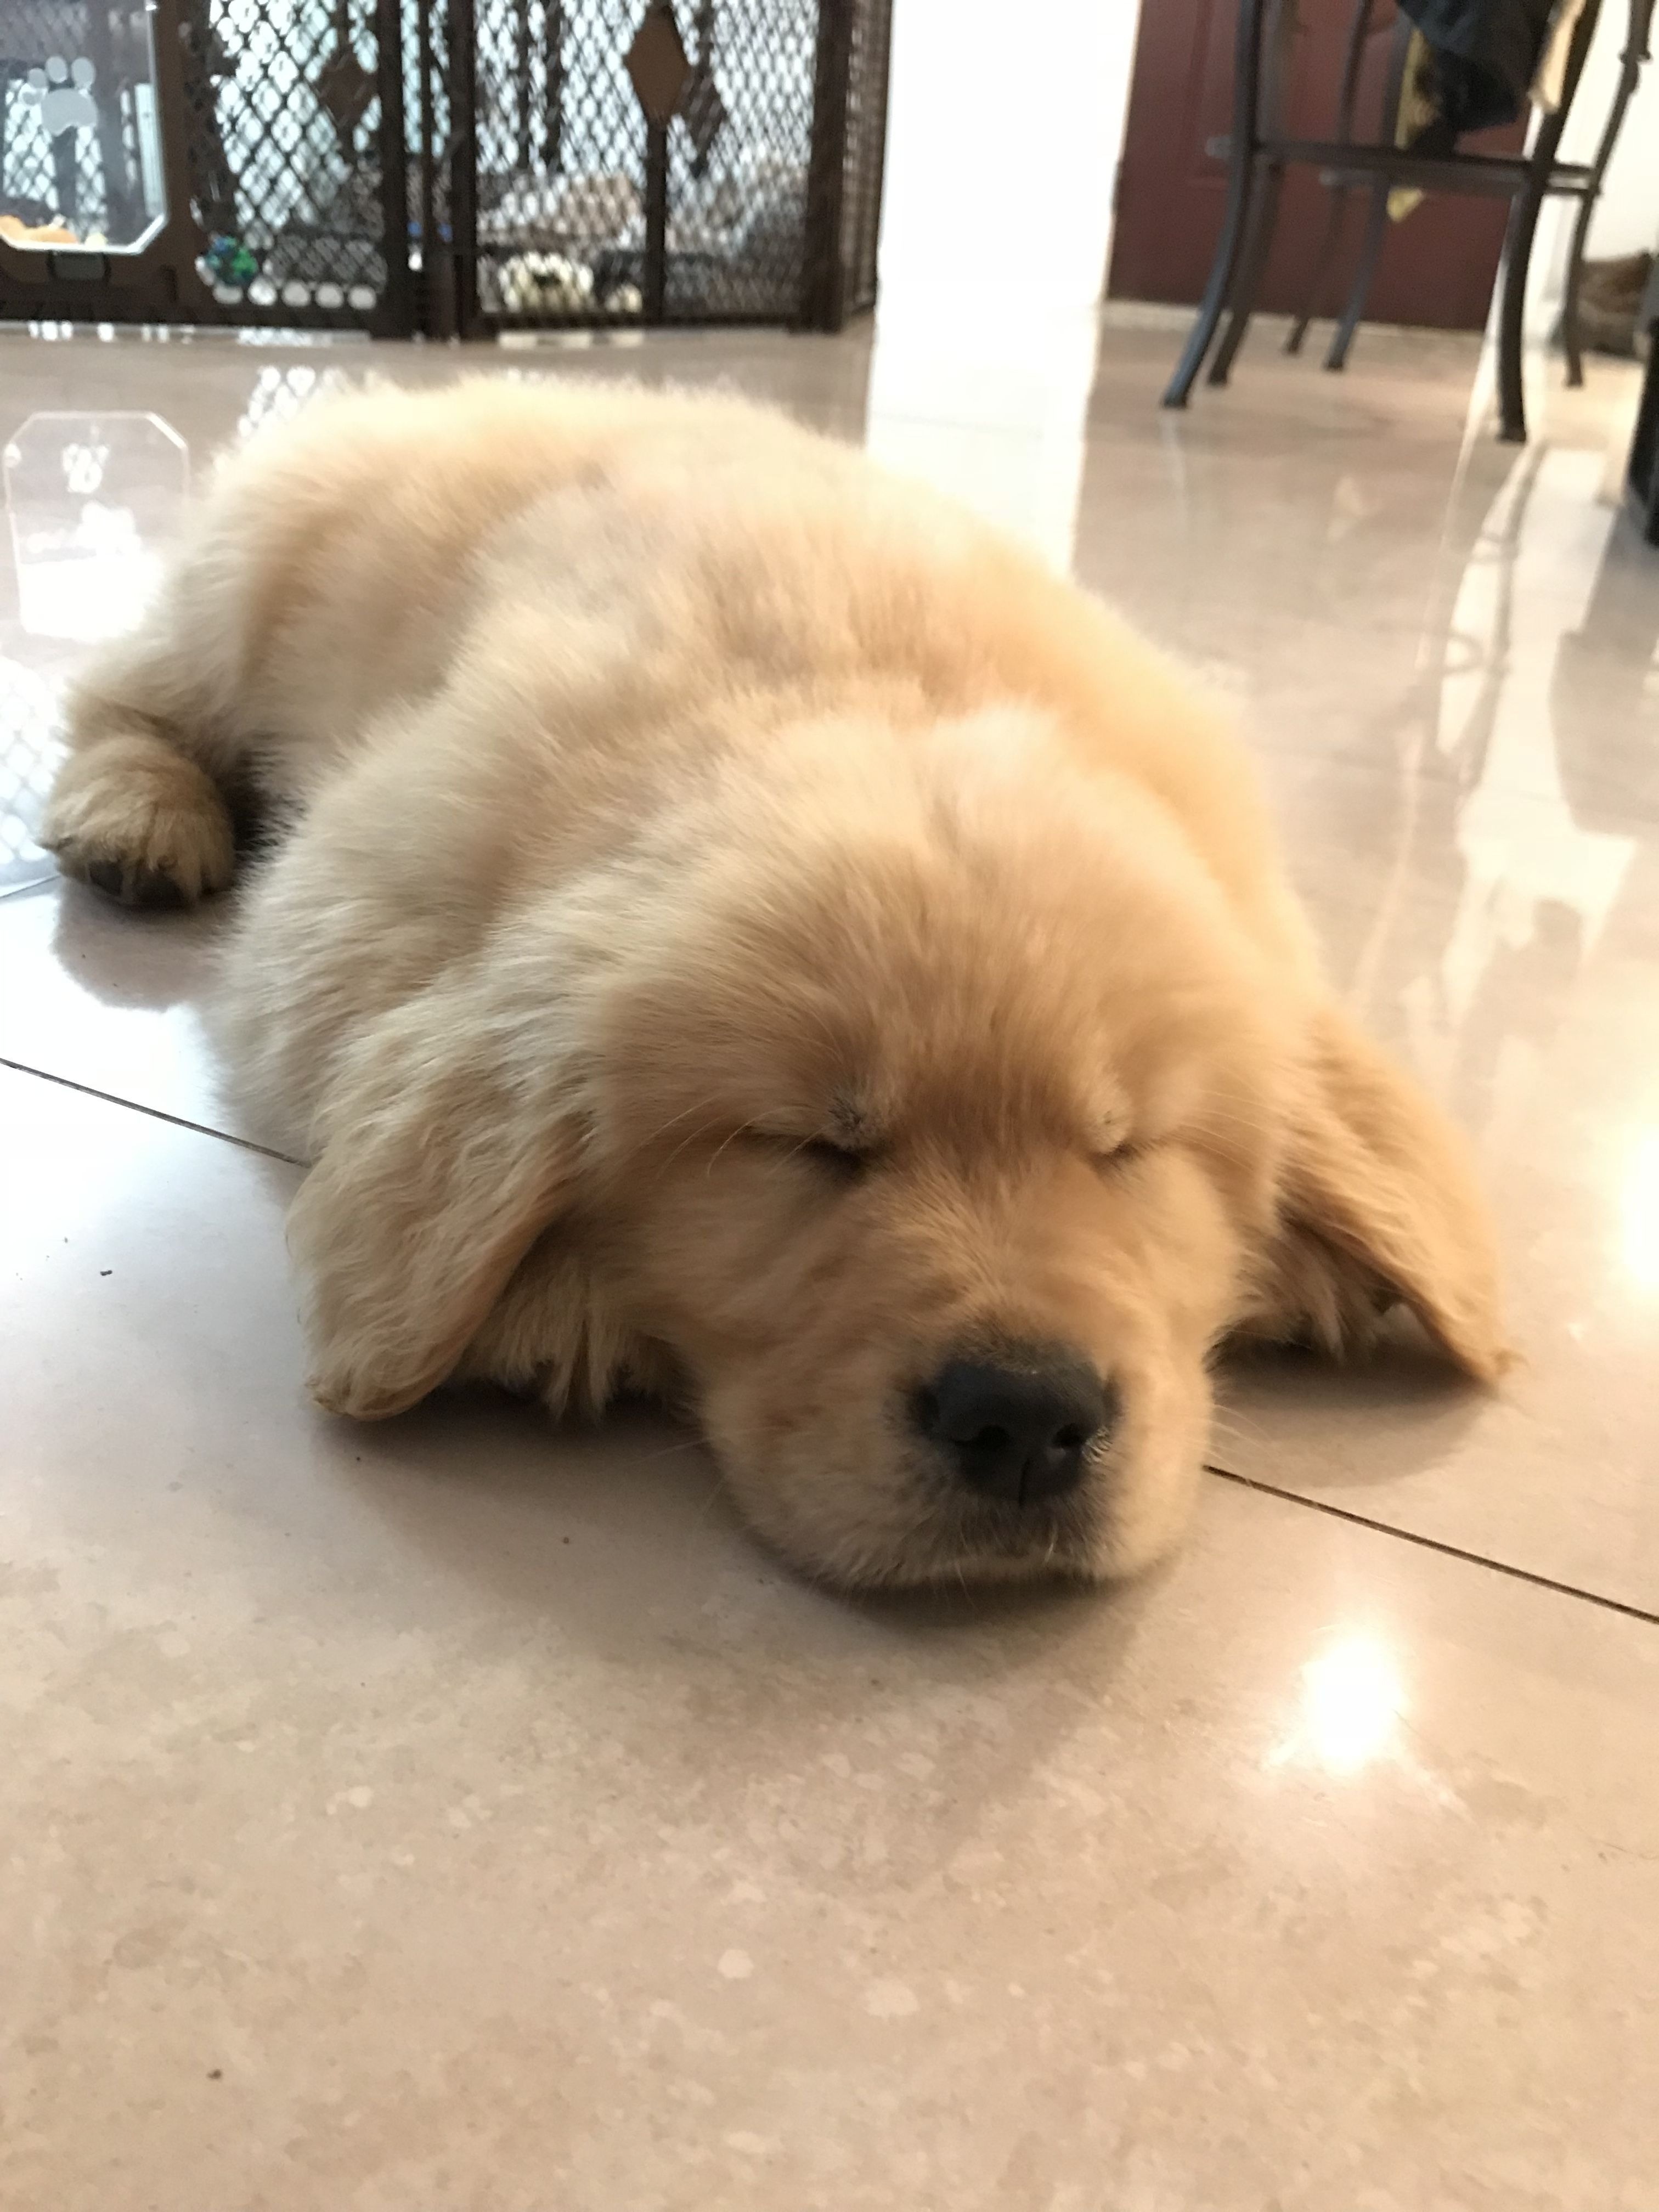 Cute Sleeping Golden Retriever Puppies Wallpaper Baby Animals Pictures Puppies Cute Dogs And Puppies